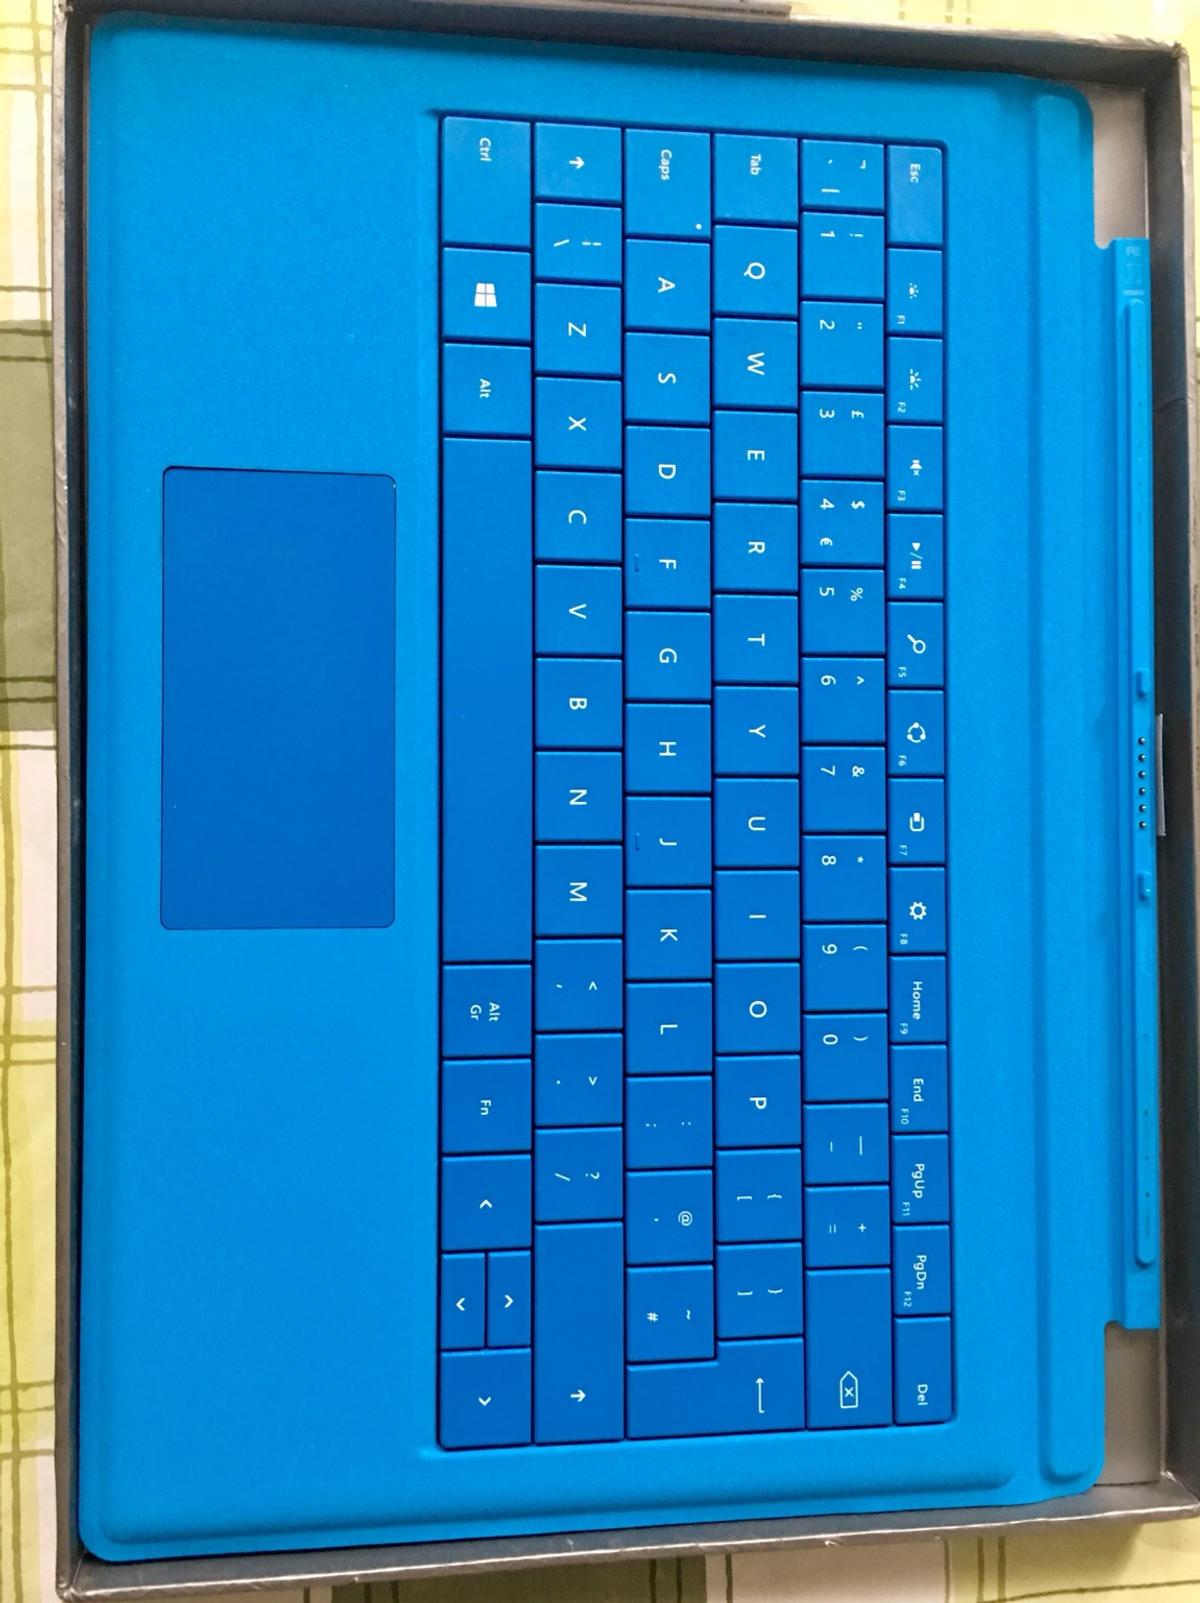 Microsoft Surface pro 3 keyboard in NW3 Camden for £35 00